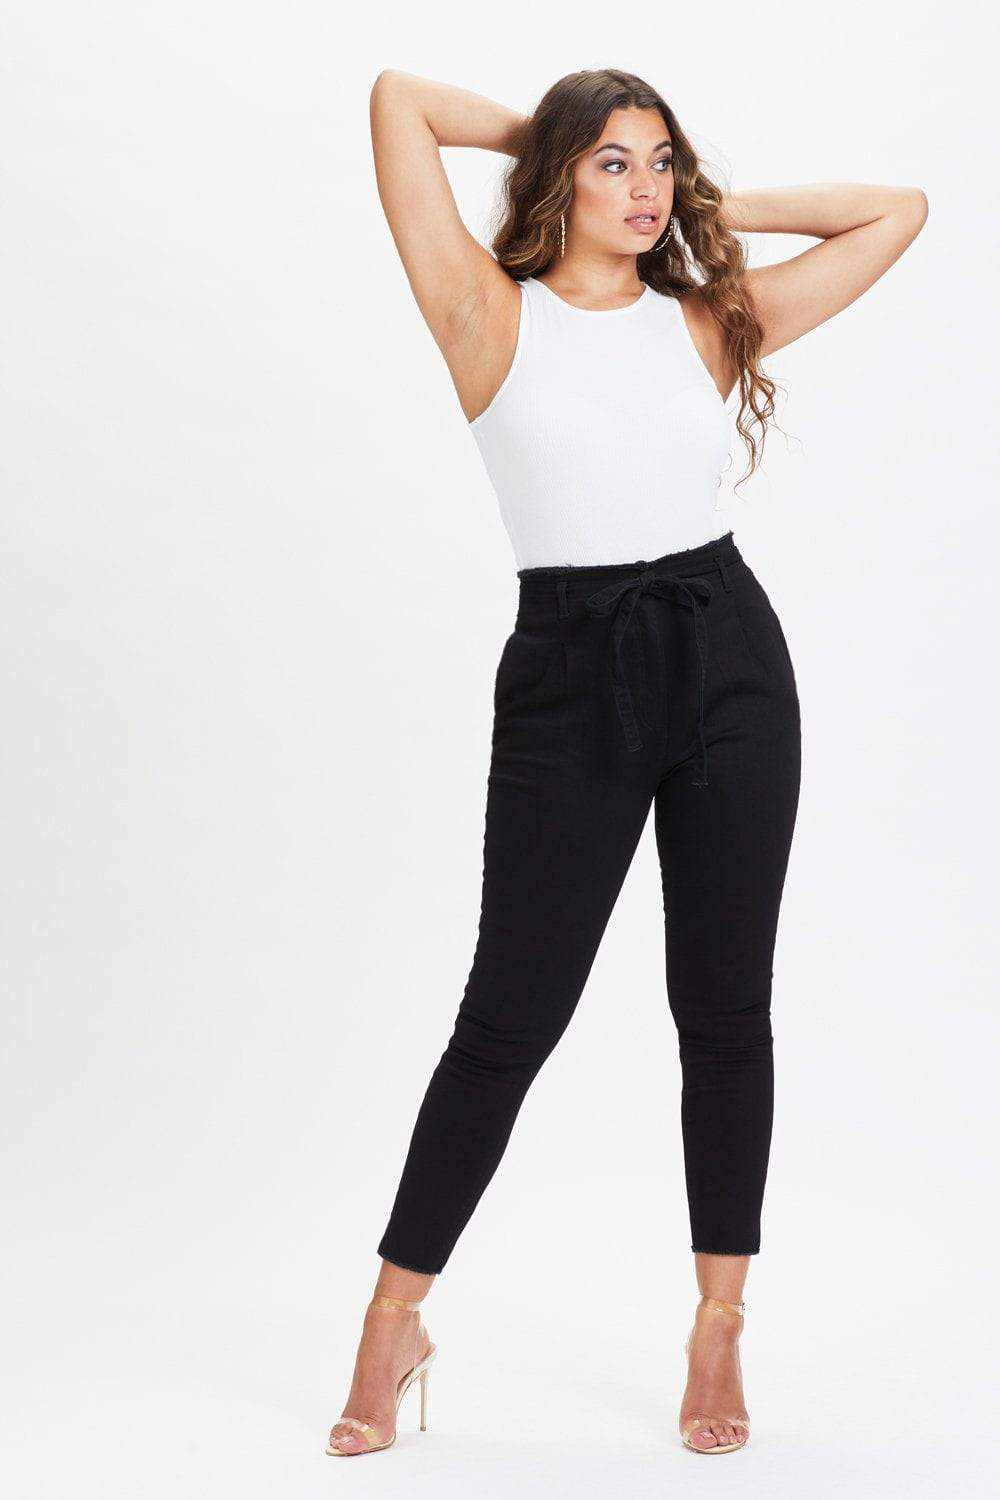 U.MAY2019 Claire High Waisted Black Jean